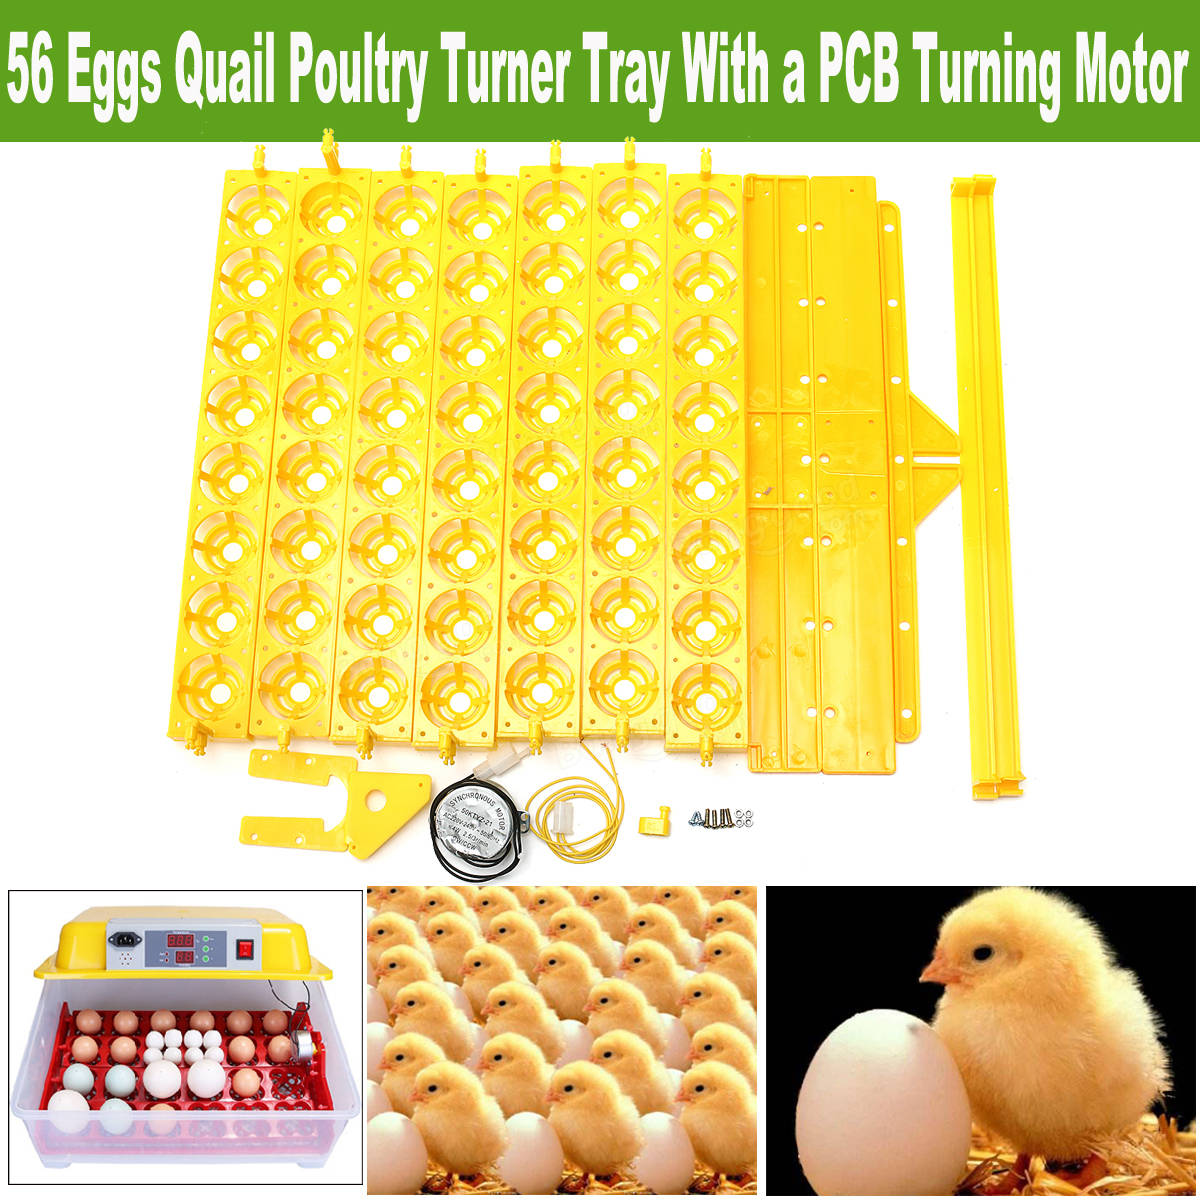 55 Incubator Automatic Eggs Turner Tray With Teching Equipment 220V Motor Farm Tool